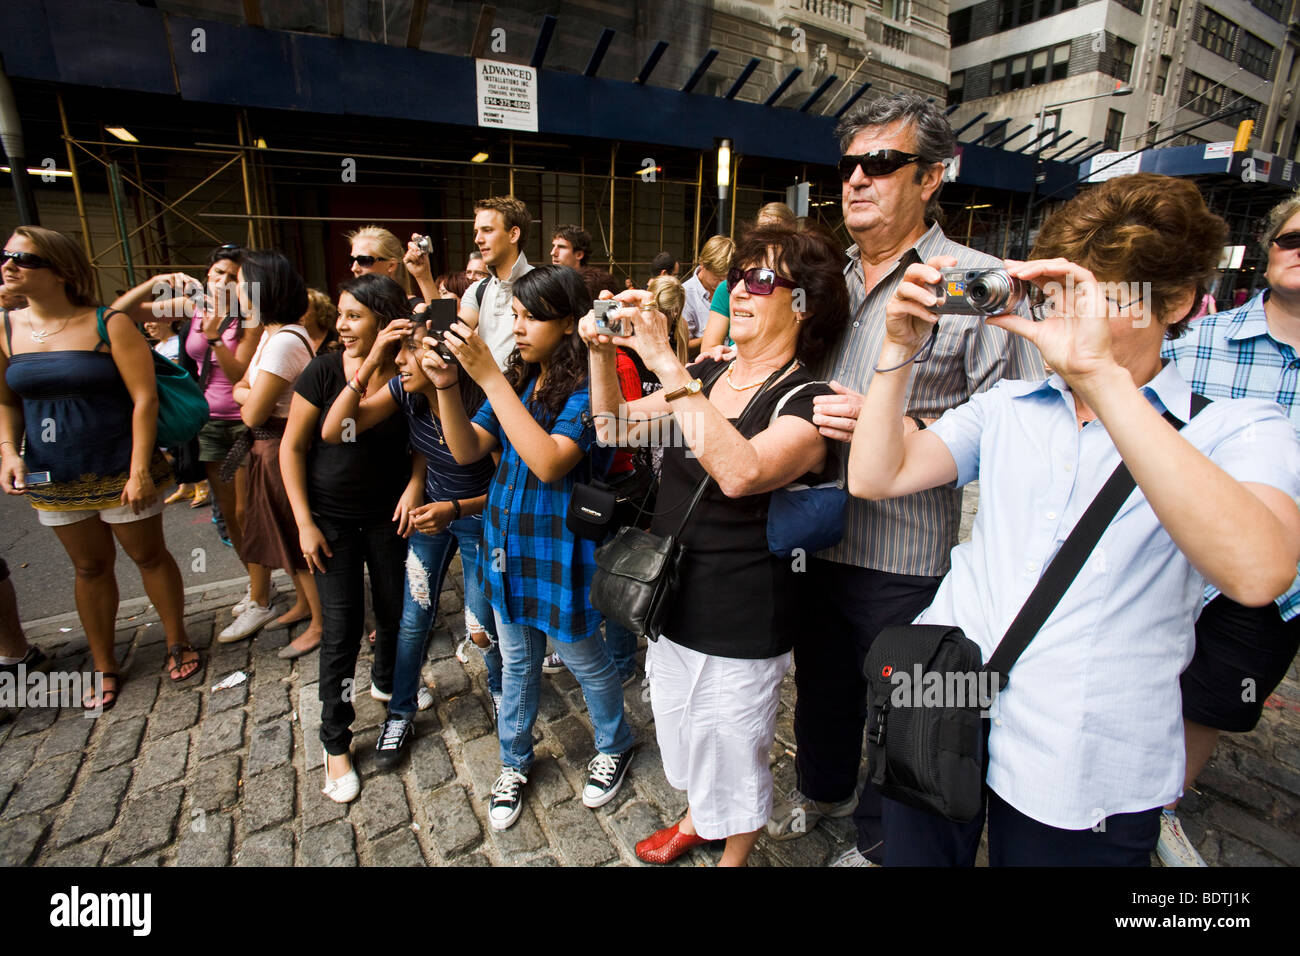 Tourists photographing the Chargin Bull sculpture near 26 Broadway, near Wall Street, Manhattan, New York City, - Stock Image